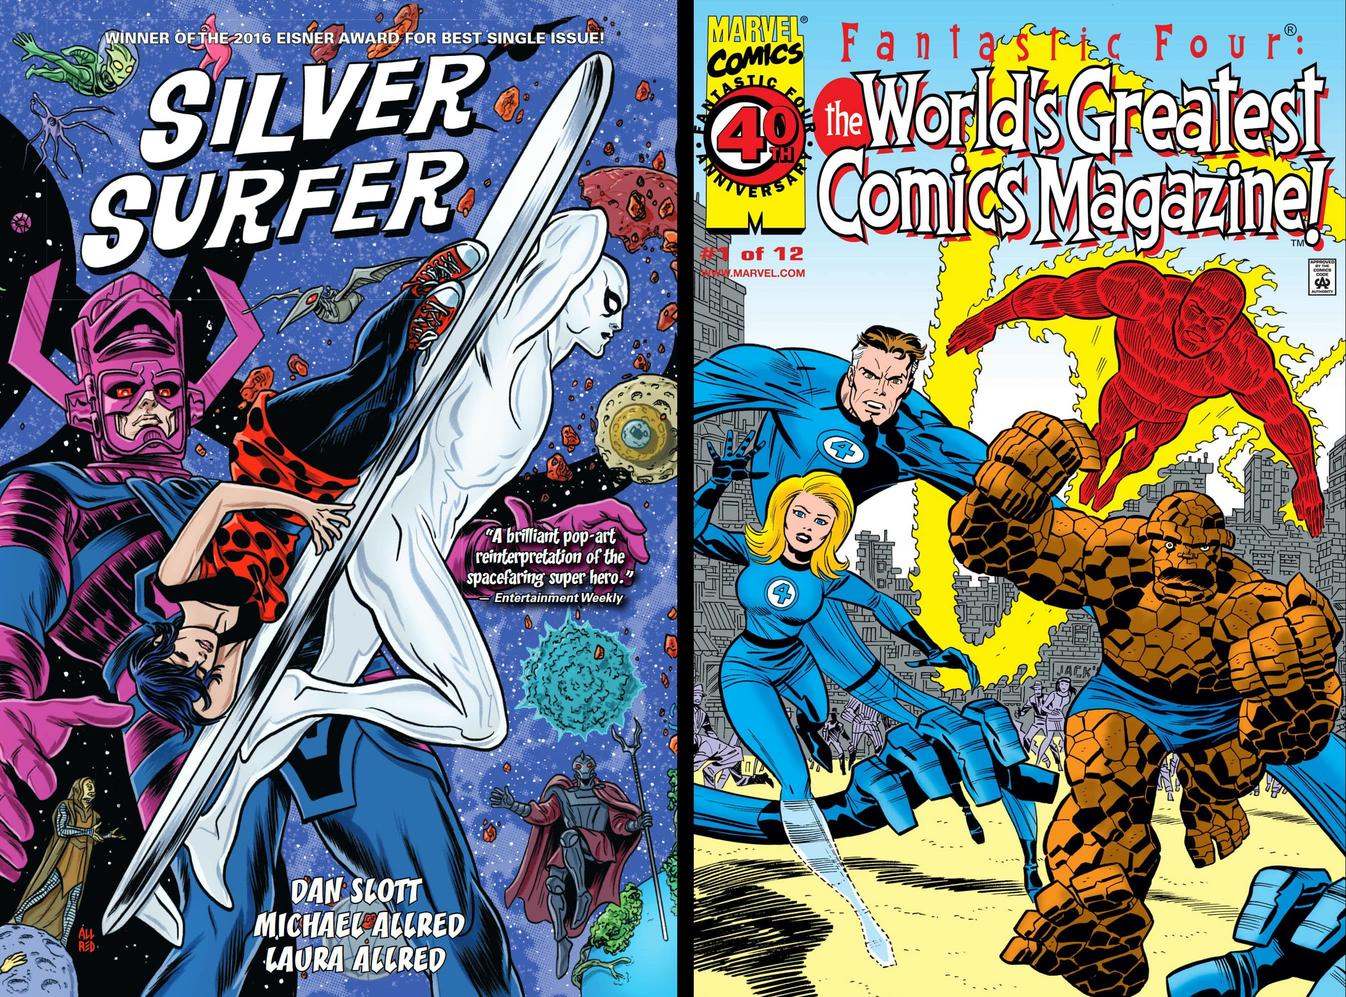 Silver Surfer Omnibus and Fantastic Four